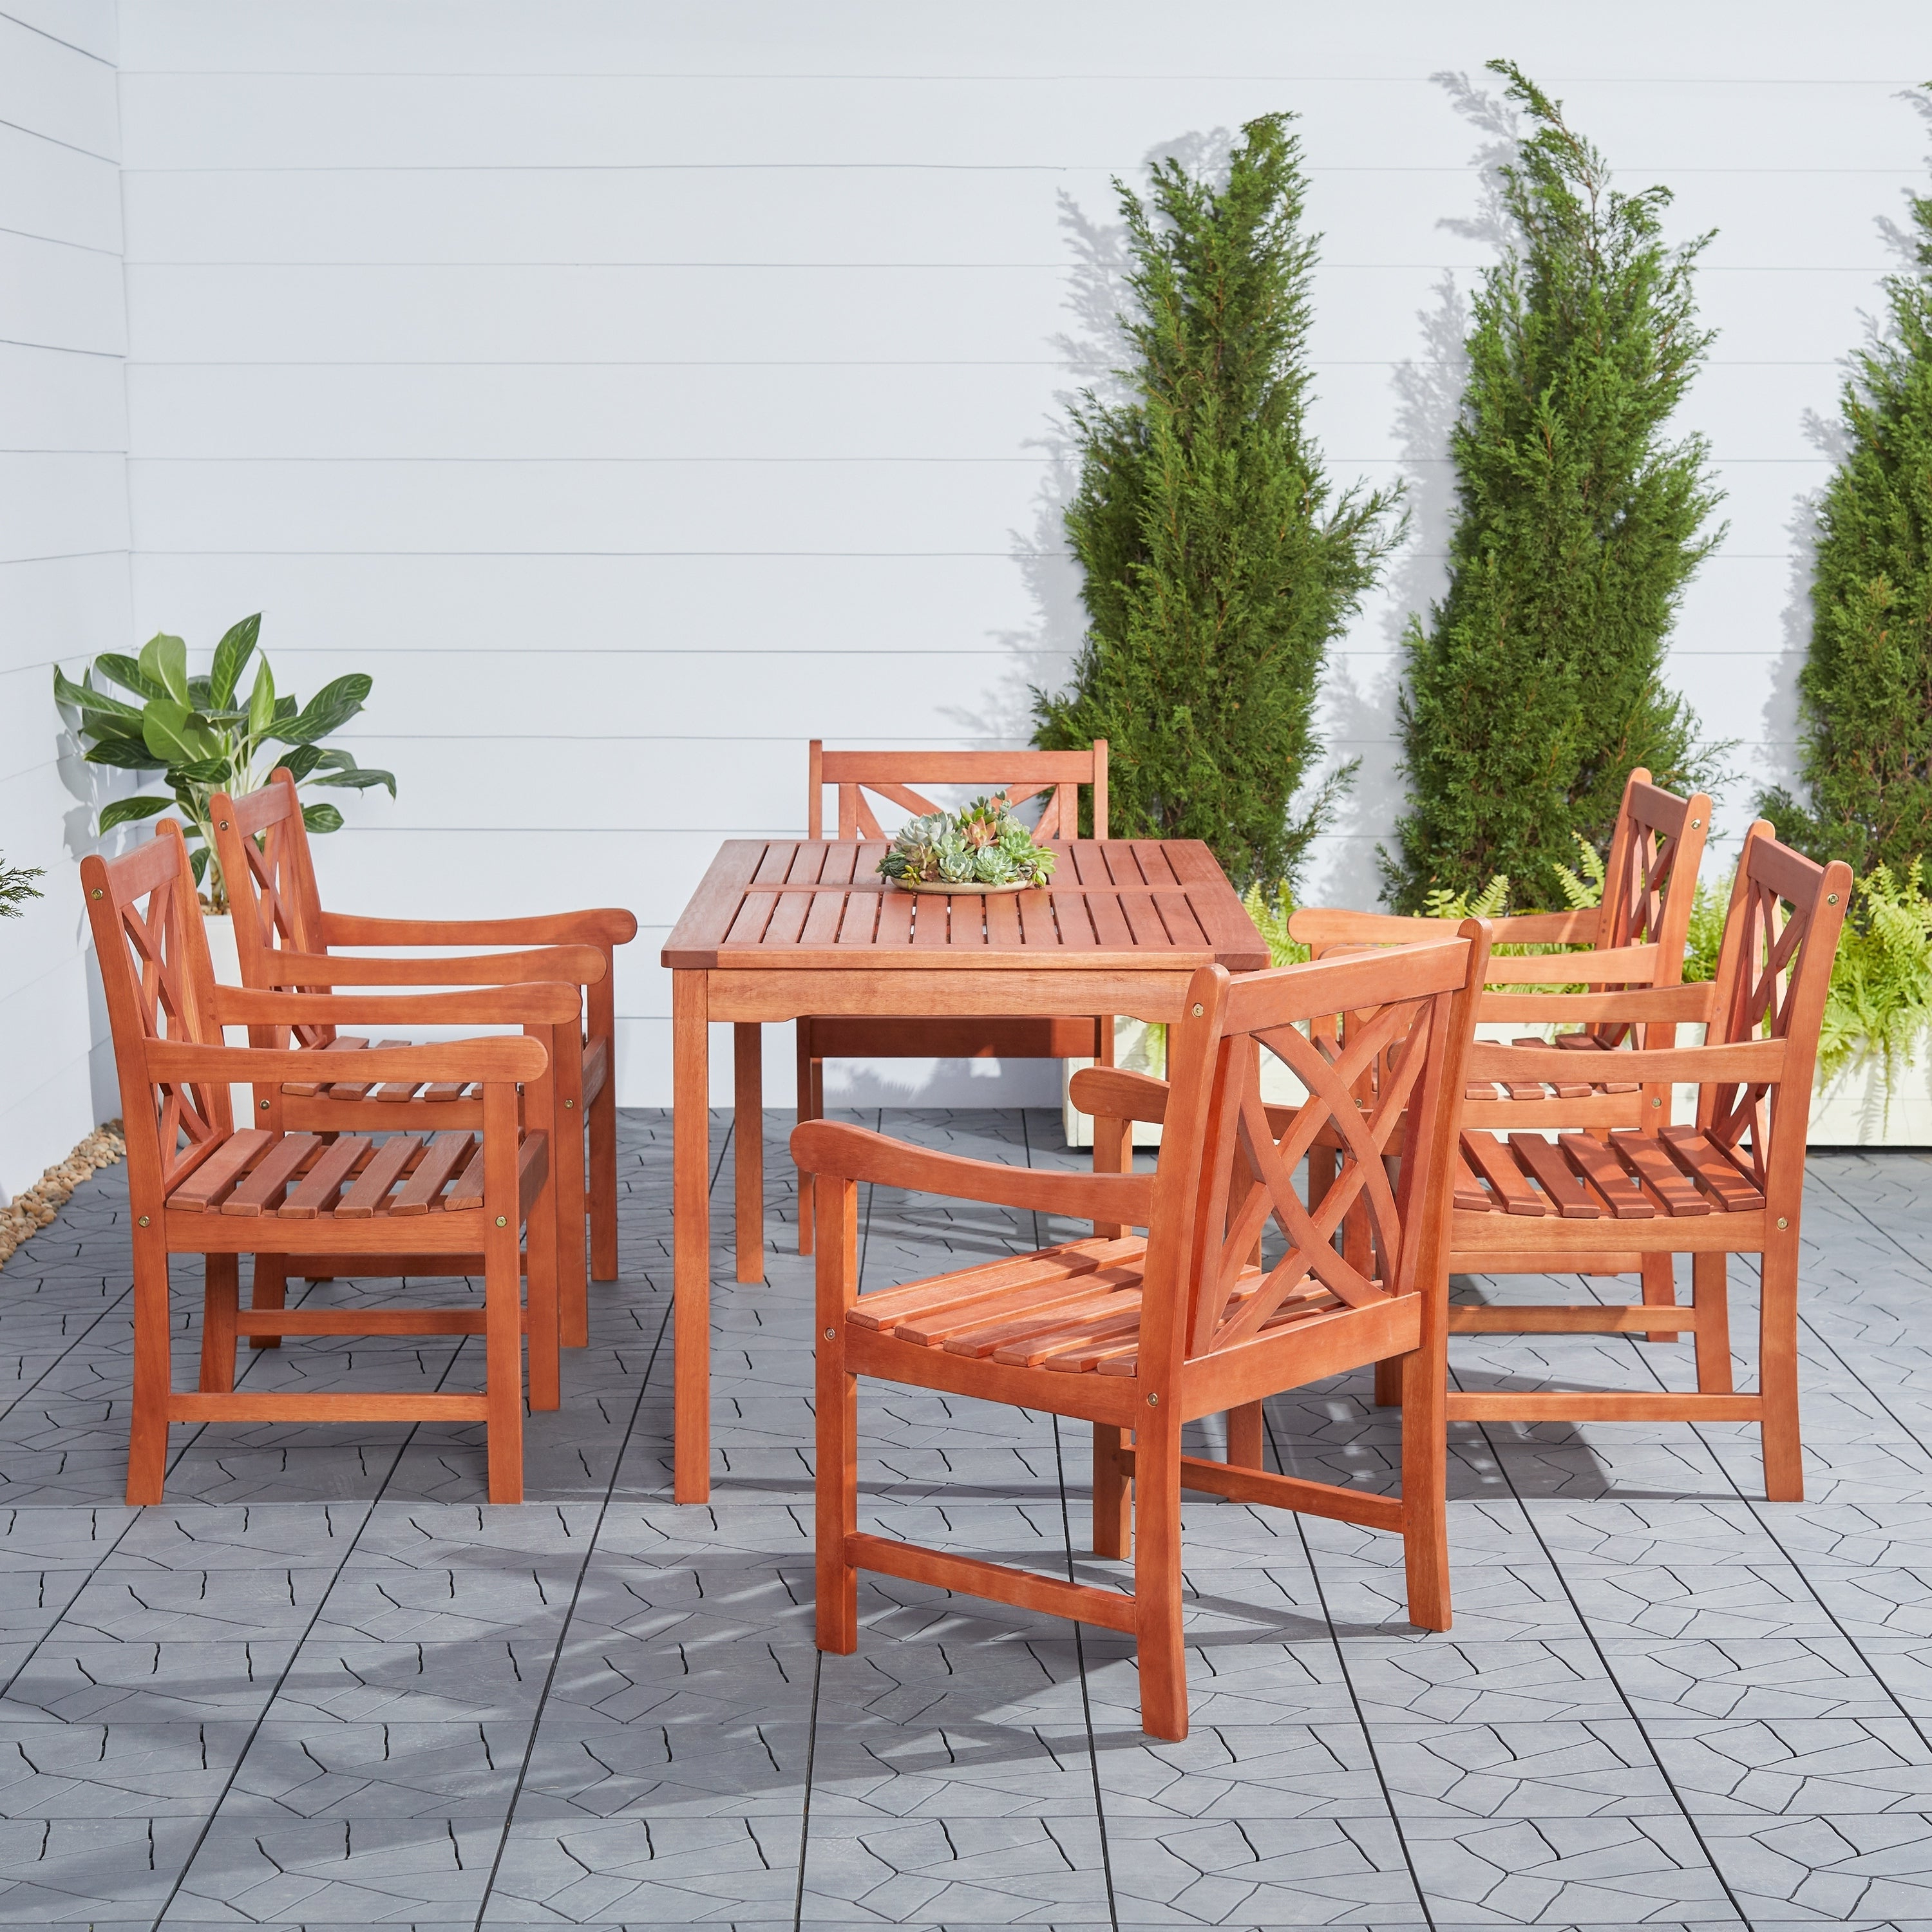 Recent Havenside Home Surfside Eco Friendly 7 Piece Eucalyptus Wood Outdoor Dining Set Within Havenside Home Surfside Outdoor Lounge Chairs (View 7 of 25)